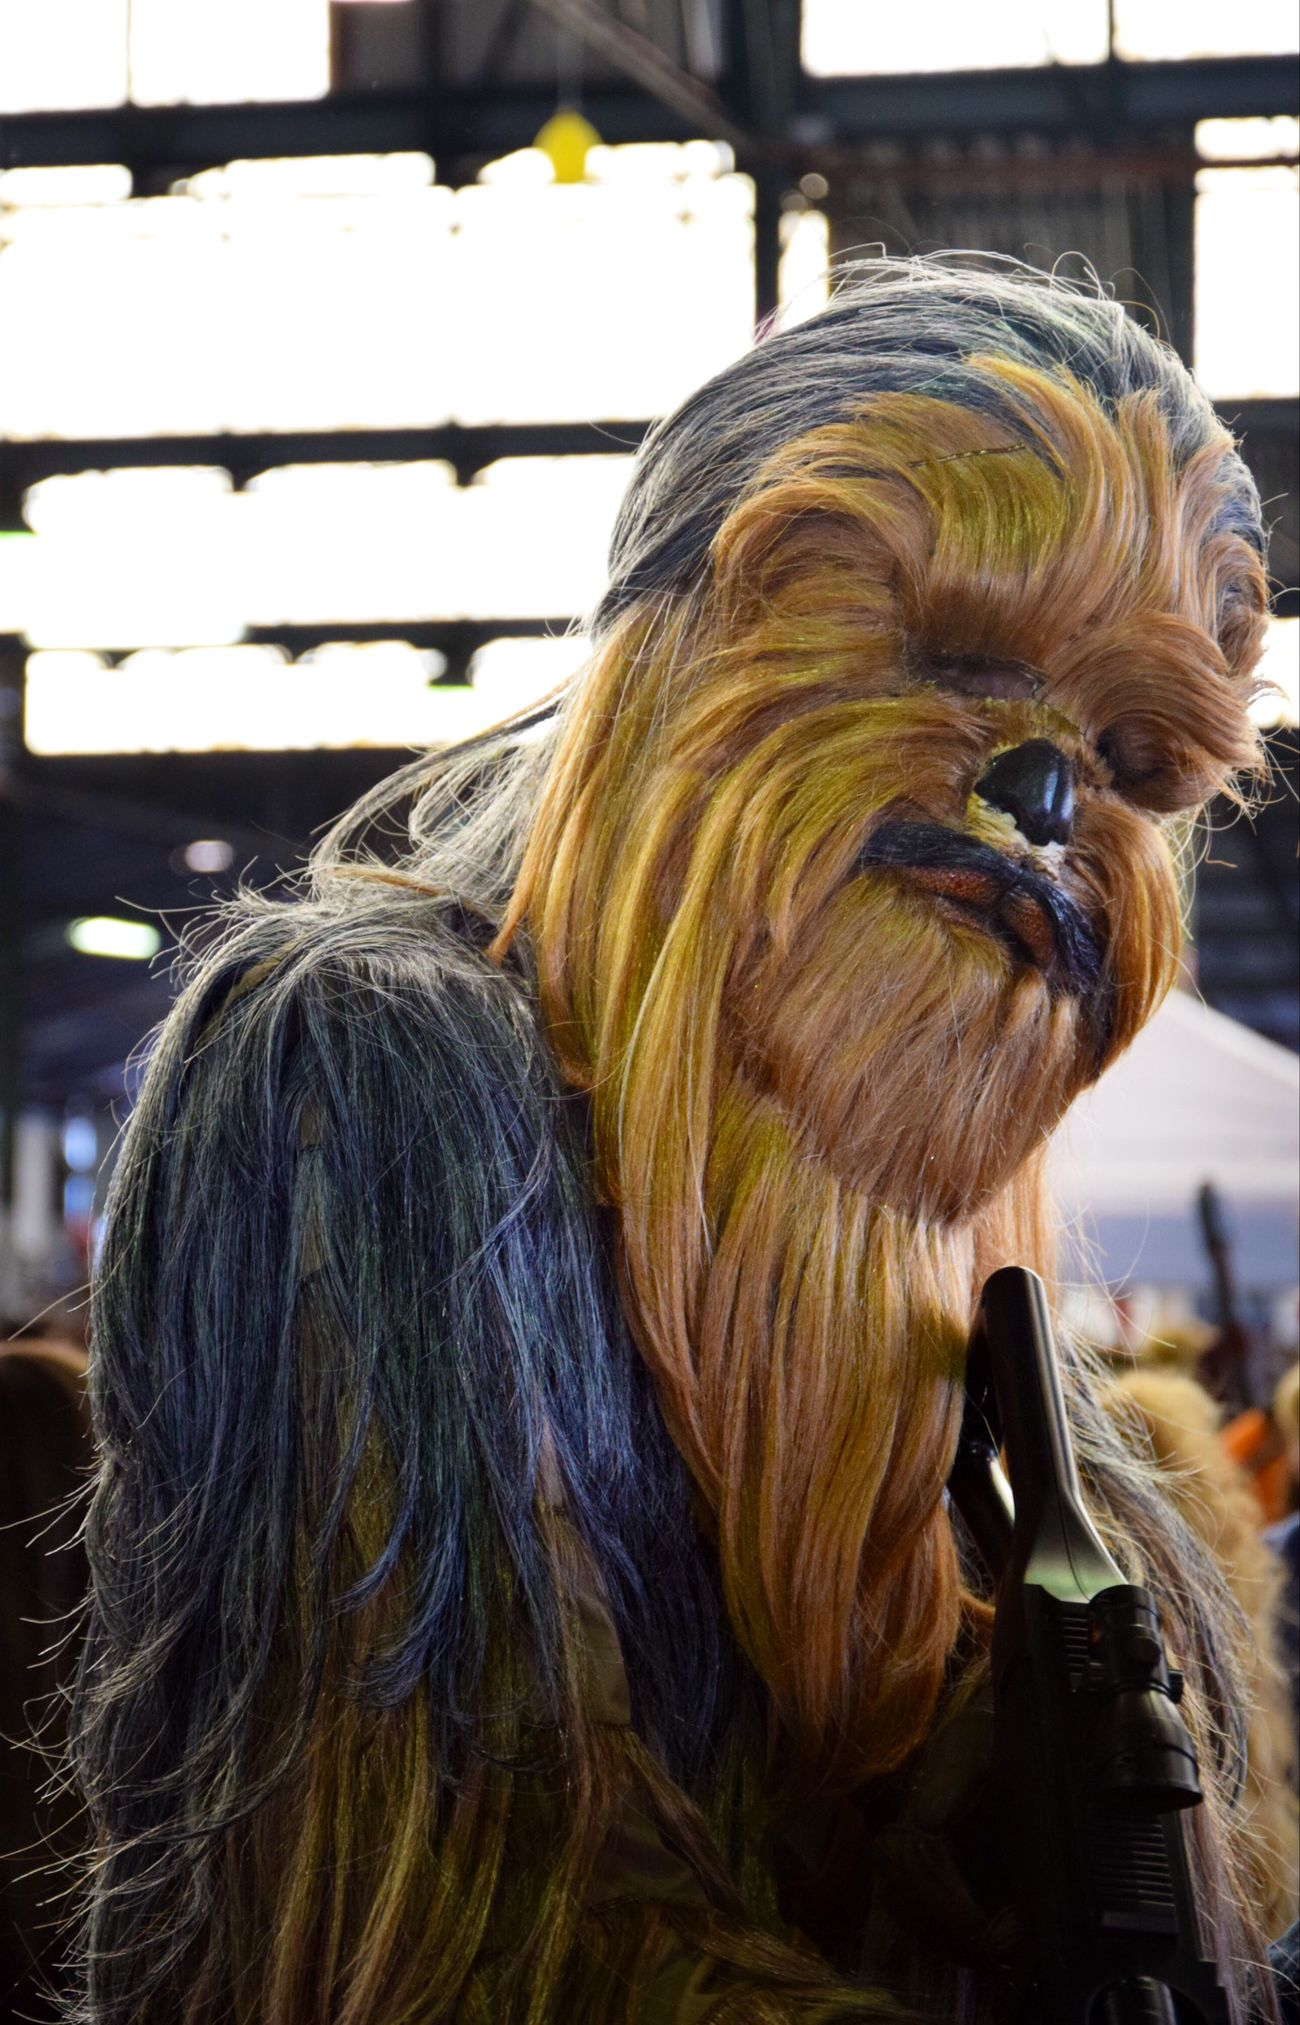 Sandonafumetto Cosplay Cosplayers Cosplaying Starwars Starwarsfigures Chewbacca Guerrestellari